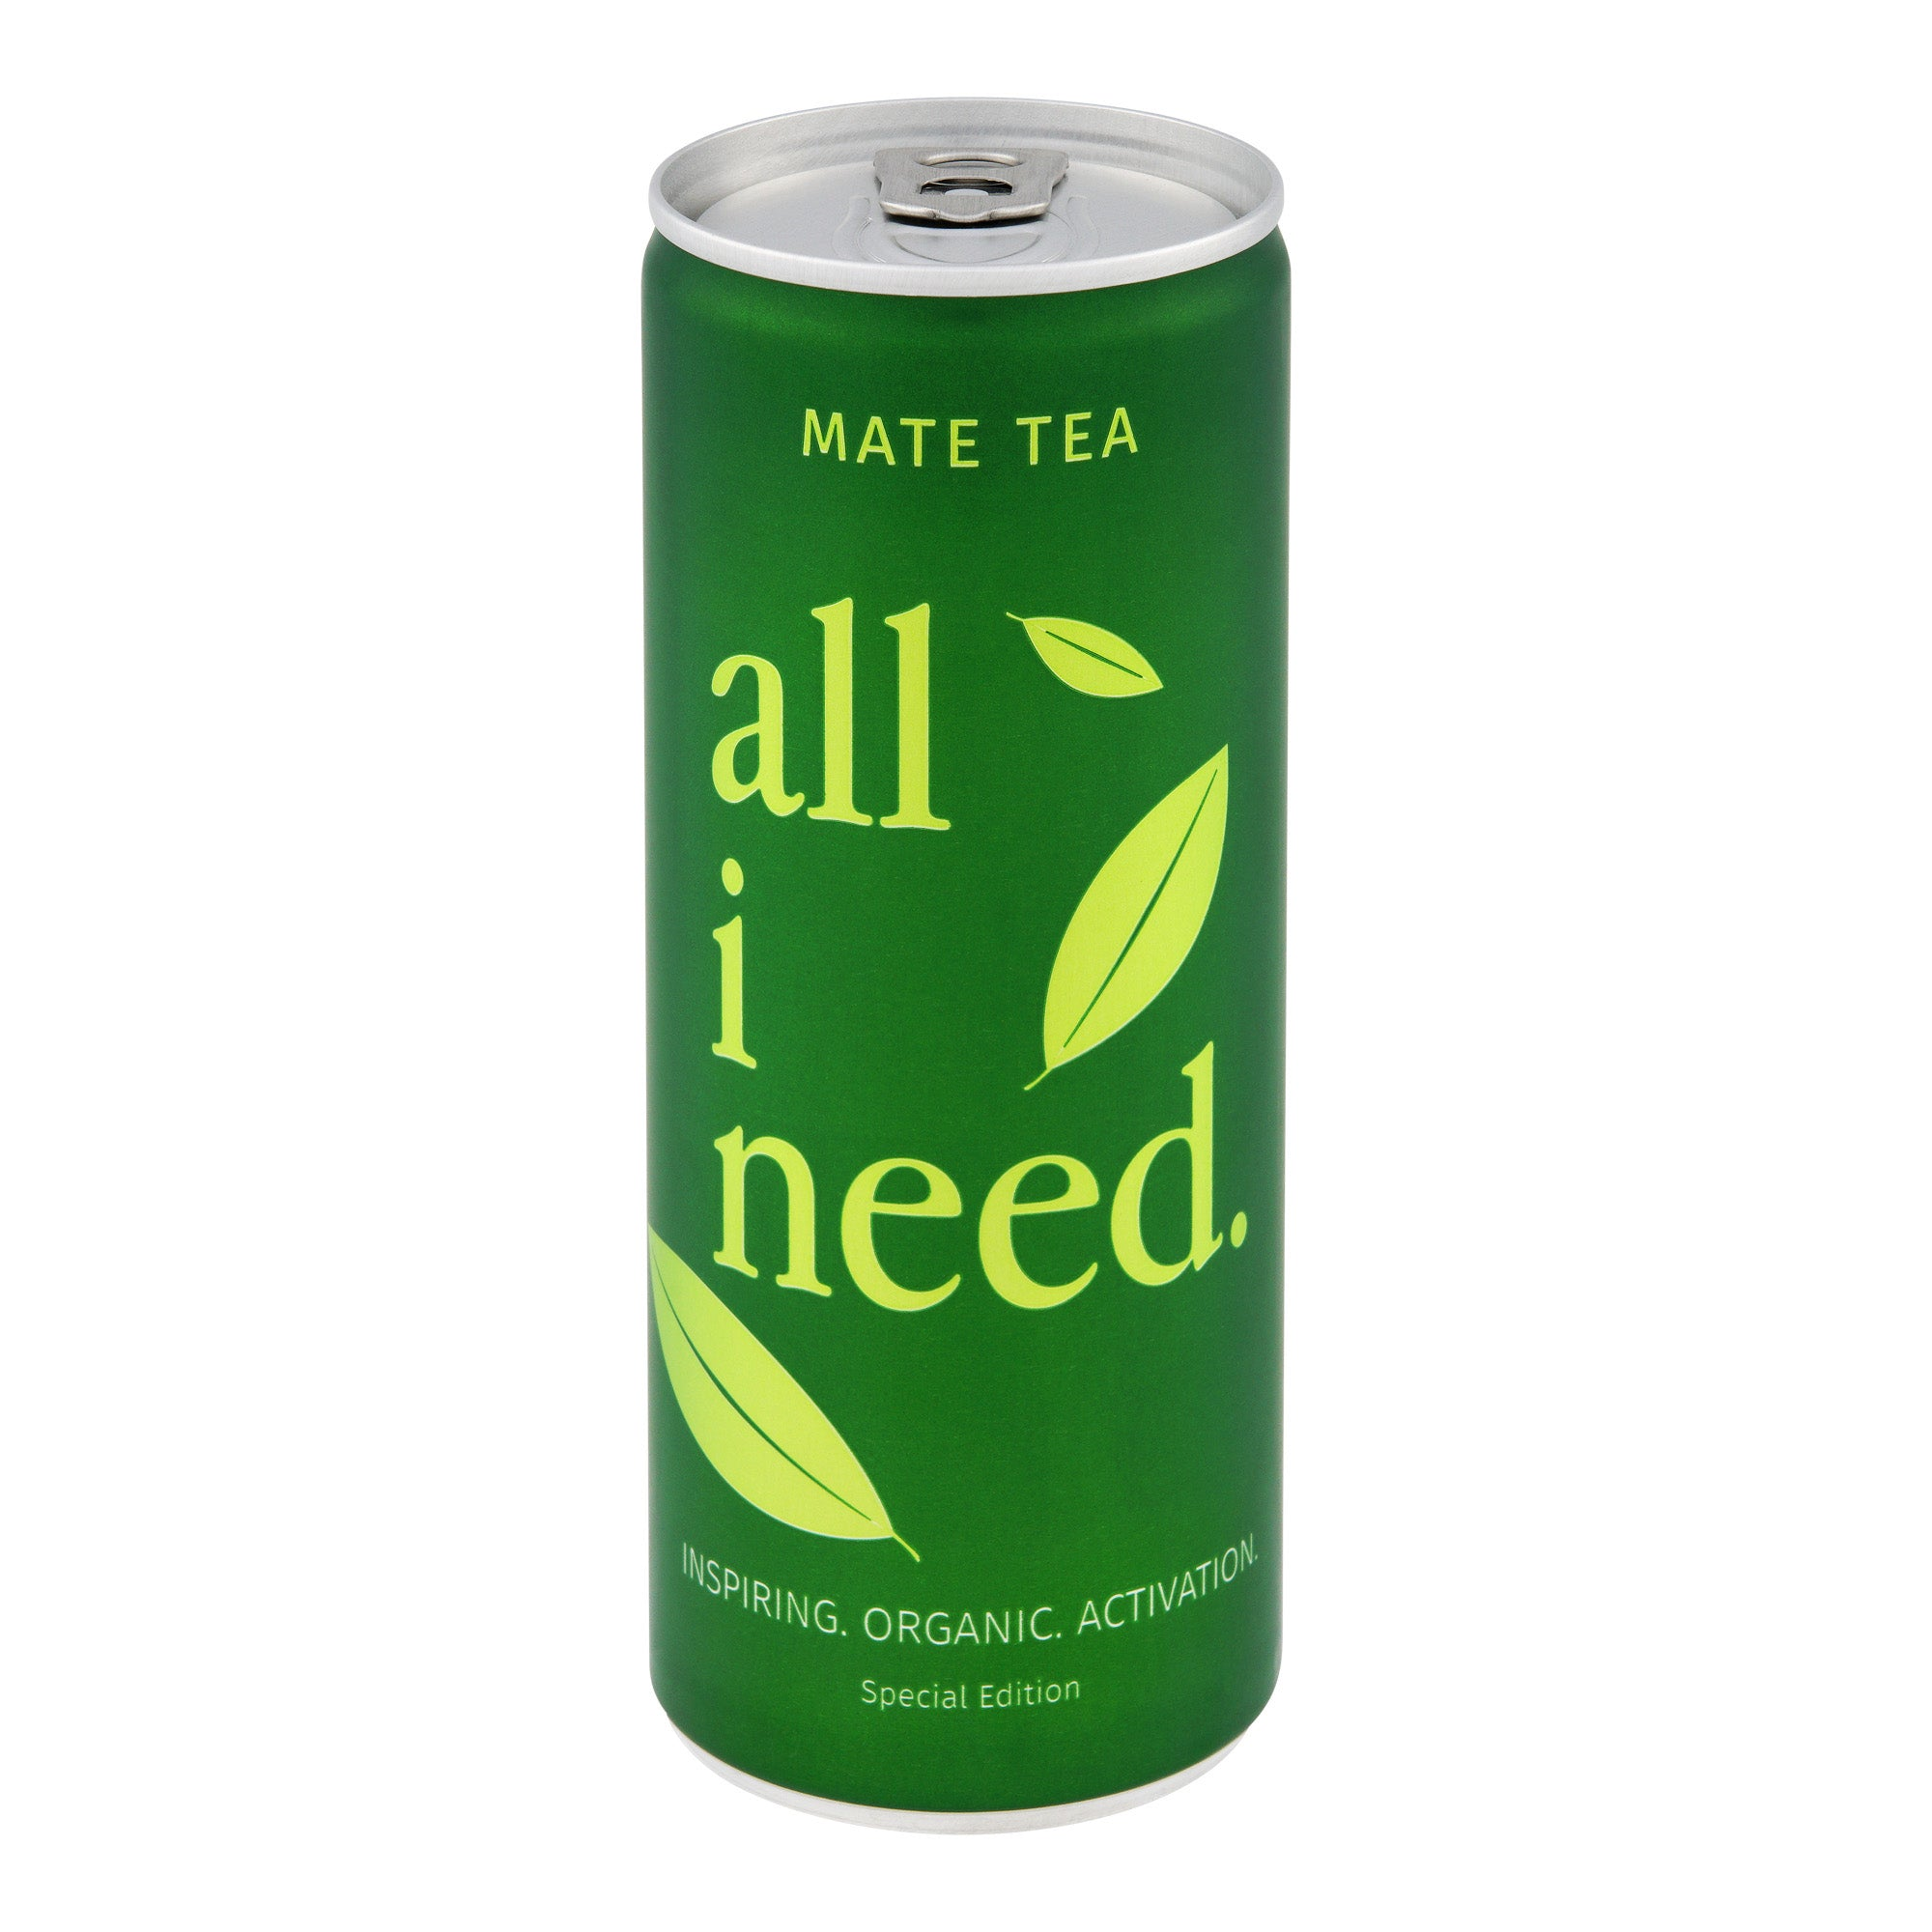 All I need Mate Tea 12 x 250ml